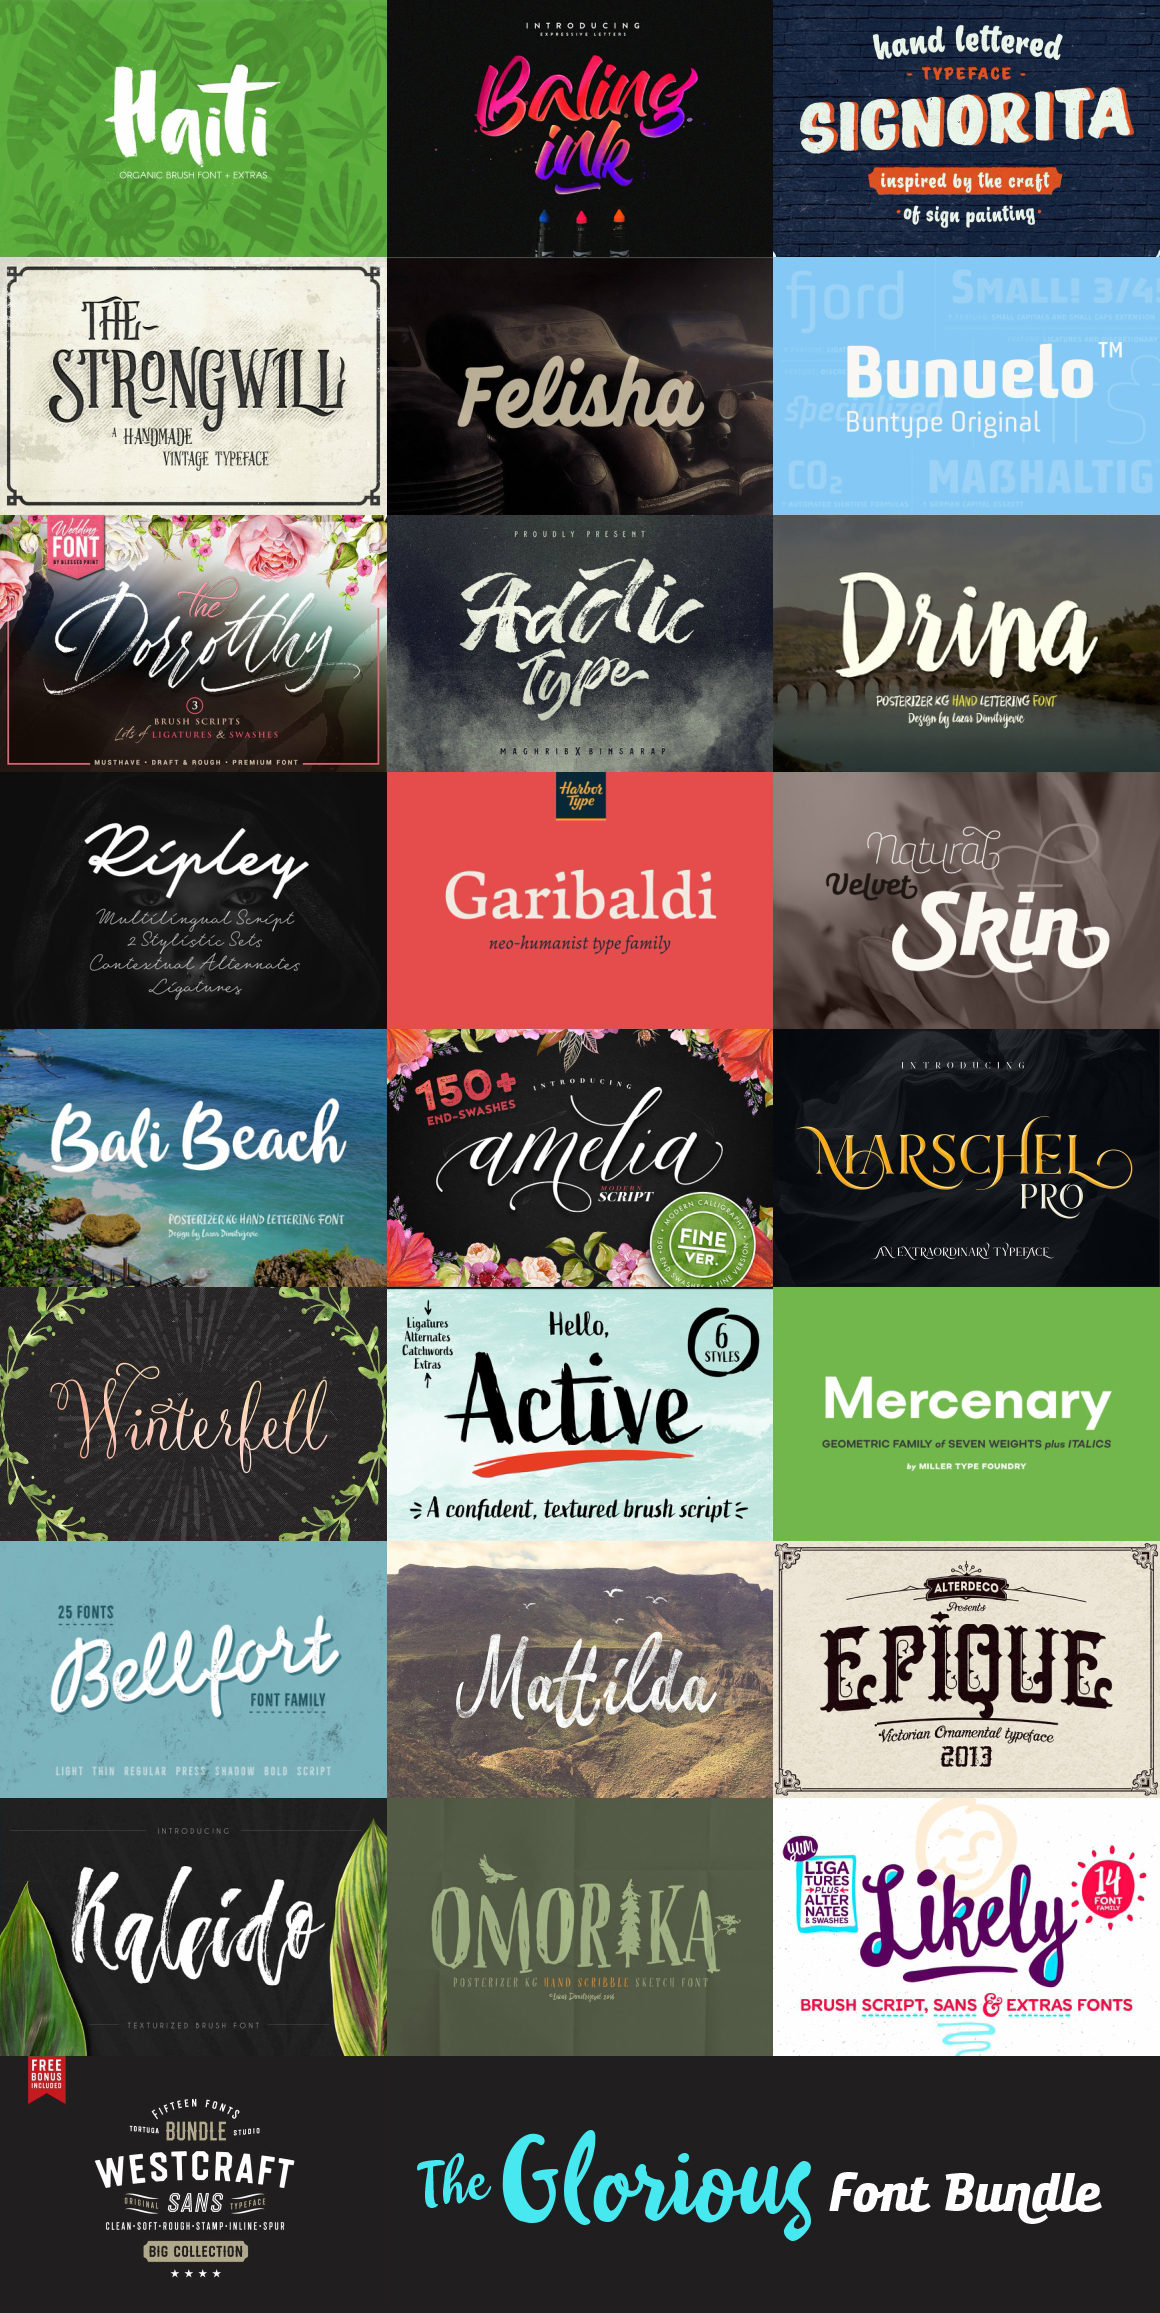 Download Free Fonts & Recommended Bundle | 05.16.2017 - IanMikraz ...